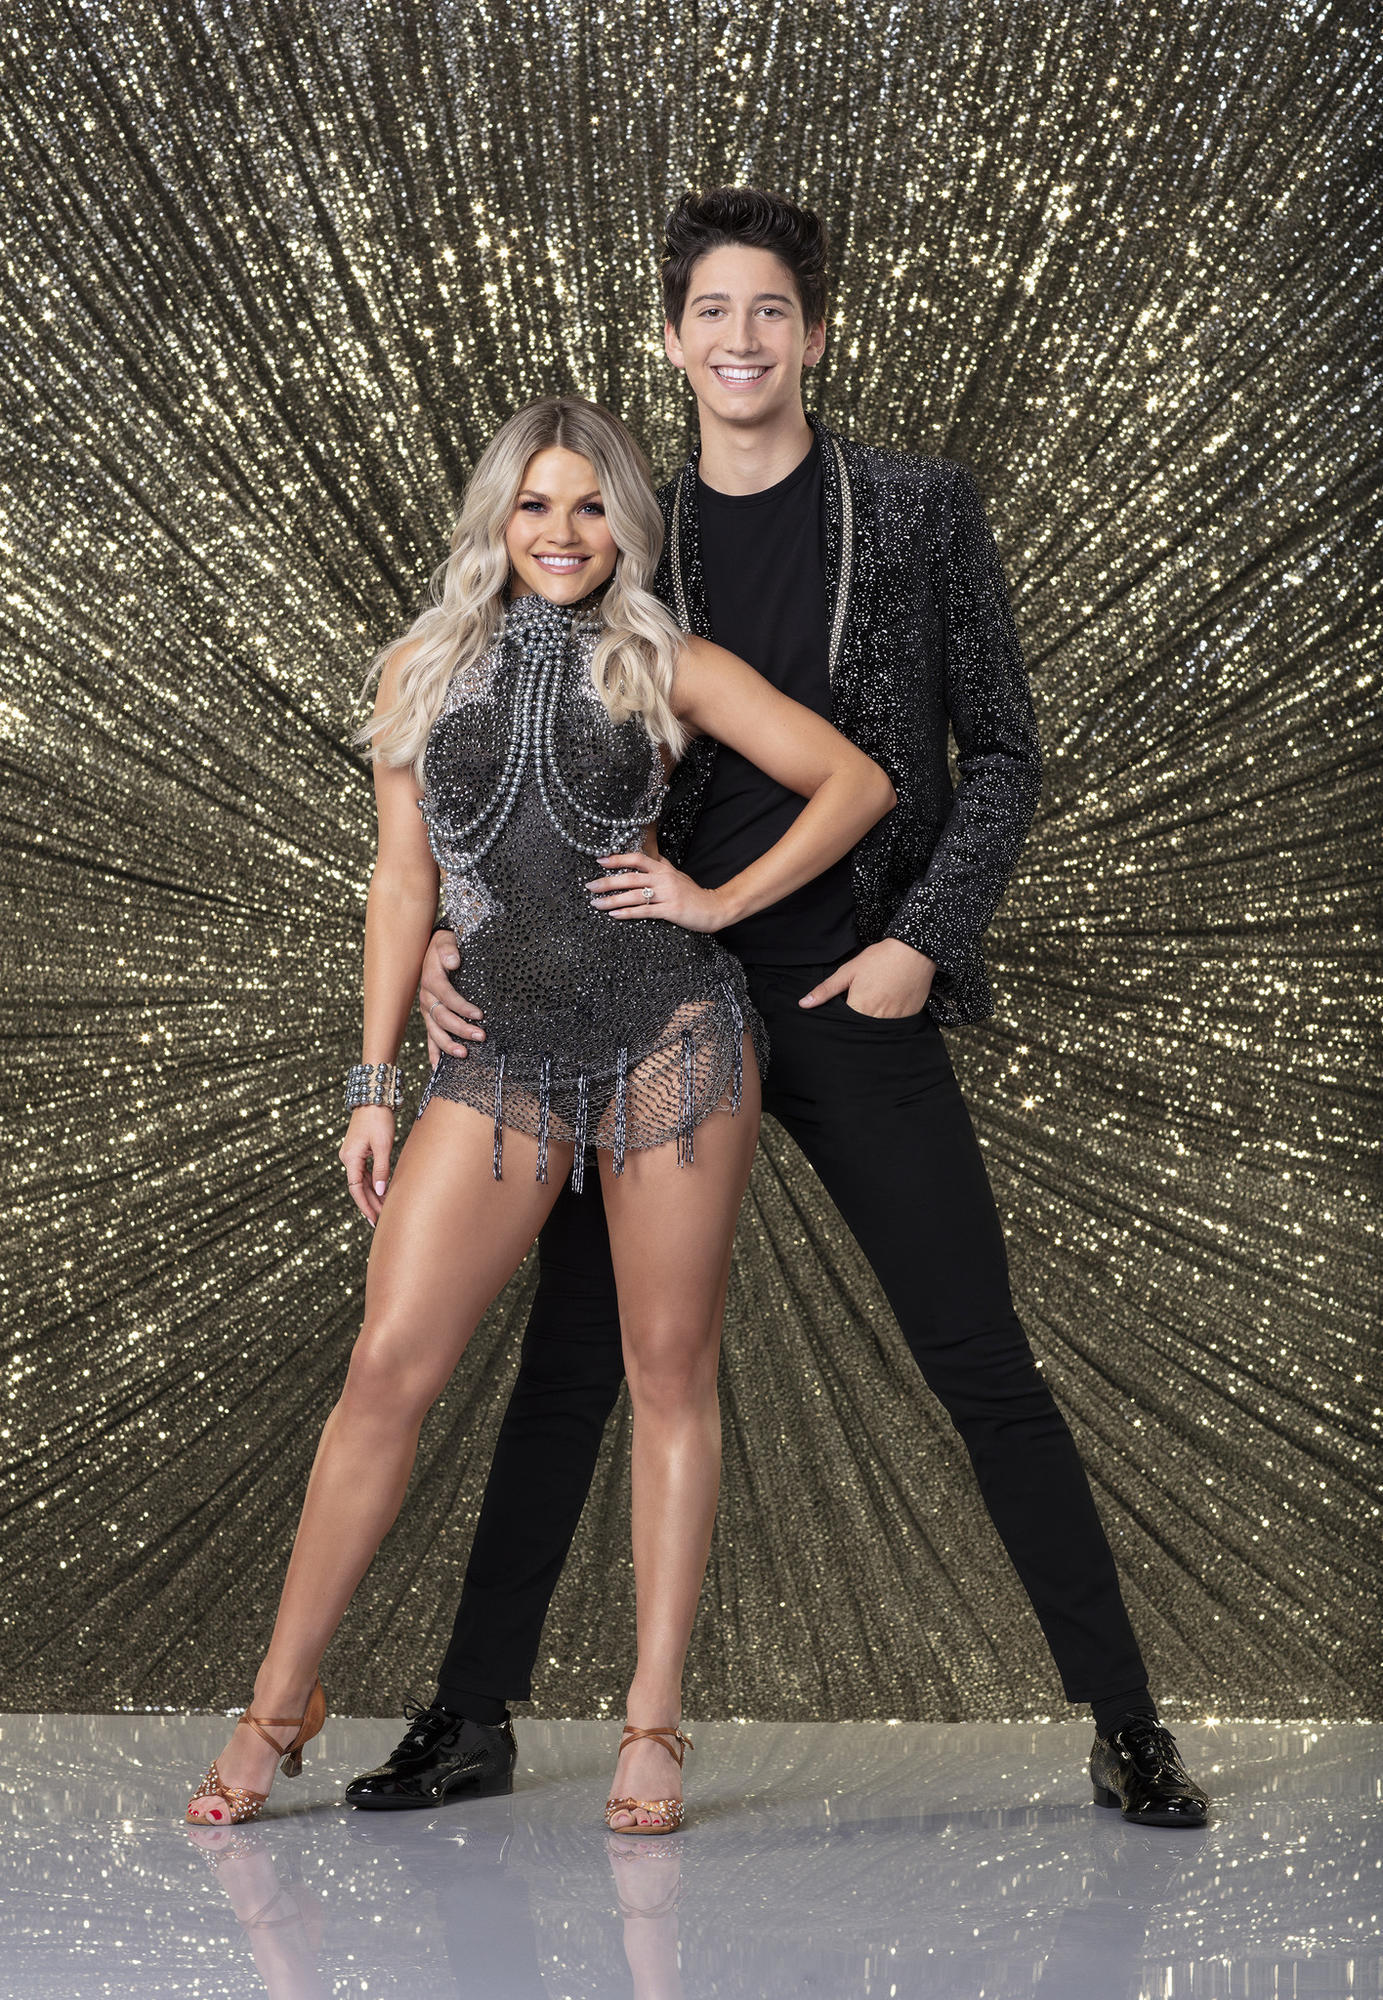 dancing with the stars readers suggest changes orlando sentinel